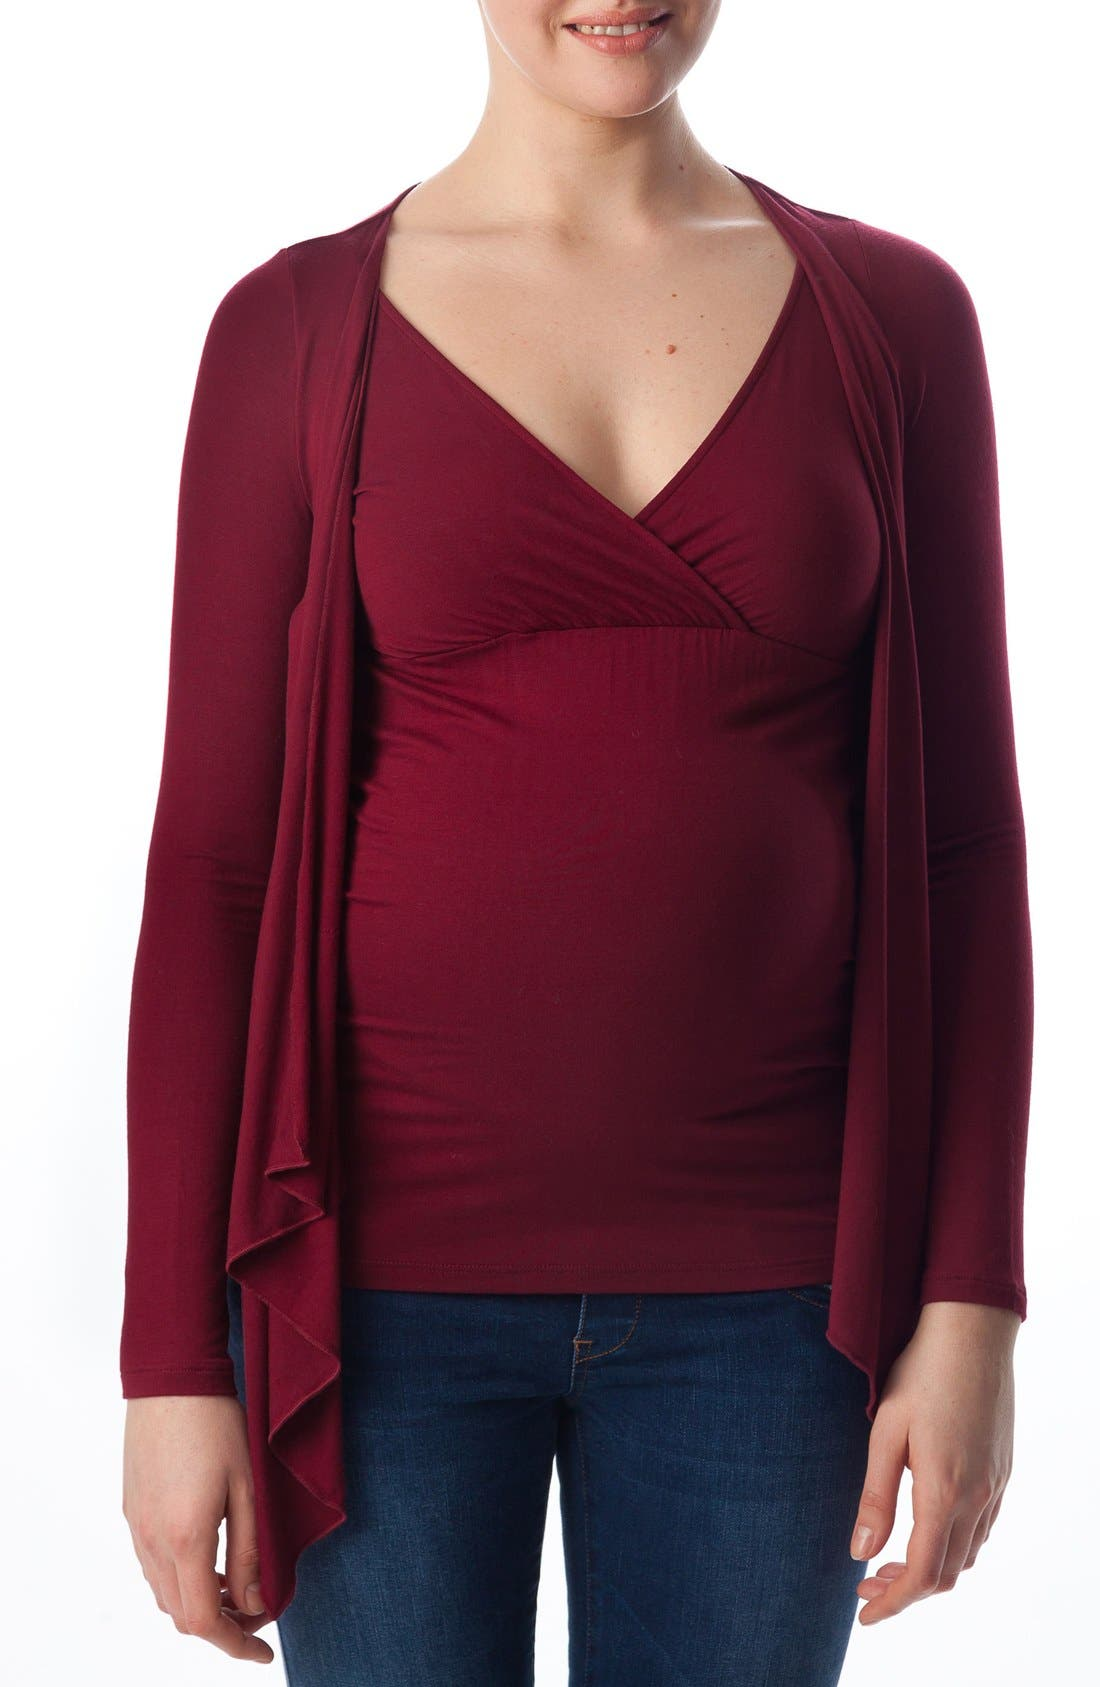 Anemone Maternity Wrap Top,                         Main,                         color, Ruby Wine